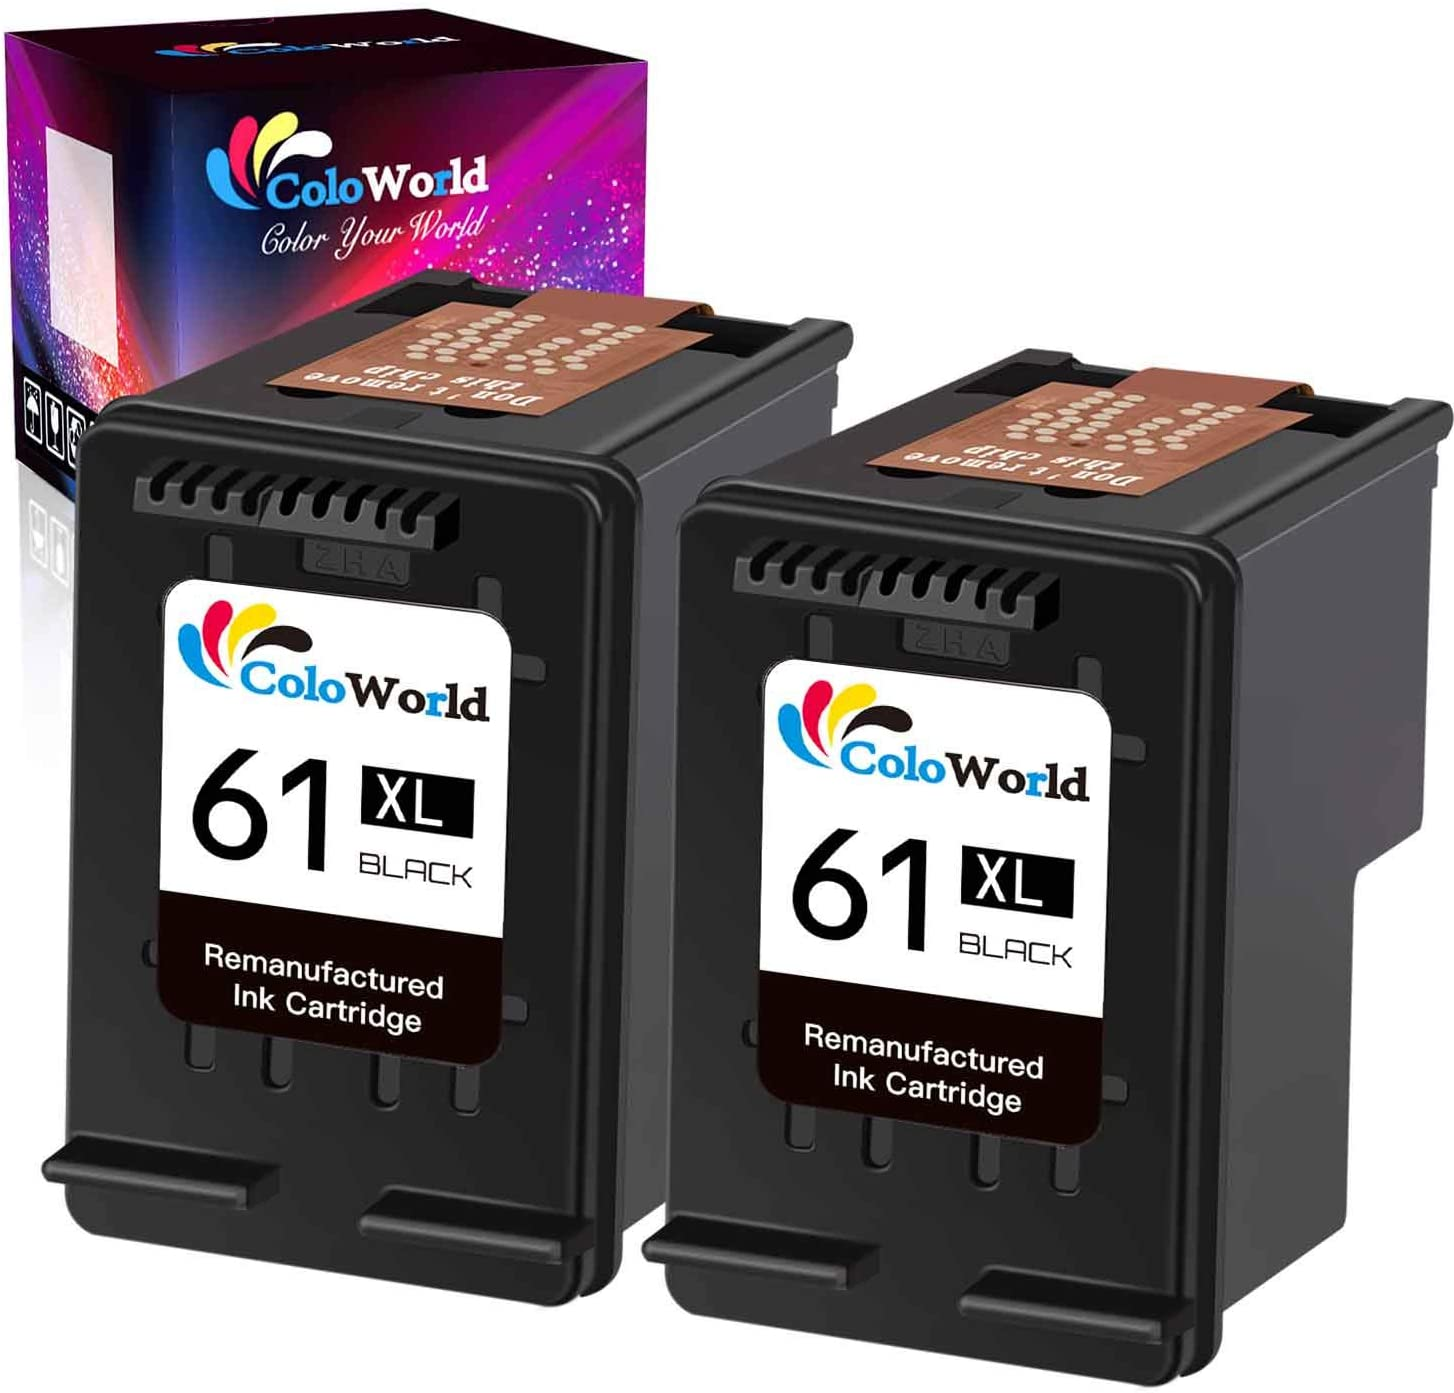 ColoWorld Remanufactured Ink Cartridge Replacement for HP 61 61XL Used for Envy 4500 5530 4502 OfficeJet 4630 4635 4632 Deskjet 2540 3050 3510 1000 1510 2542 1010 2541 Printer (2 Black,2 Pack)